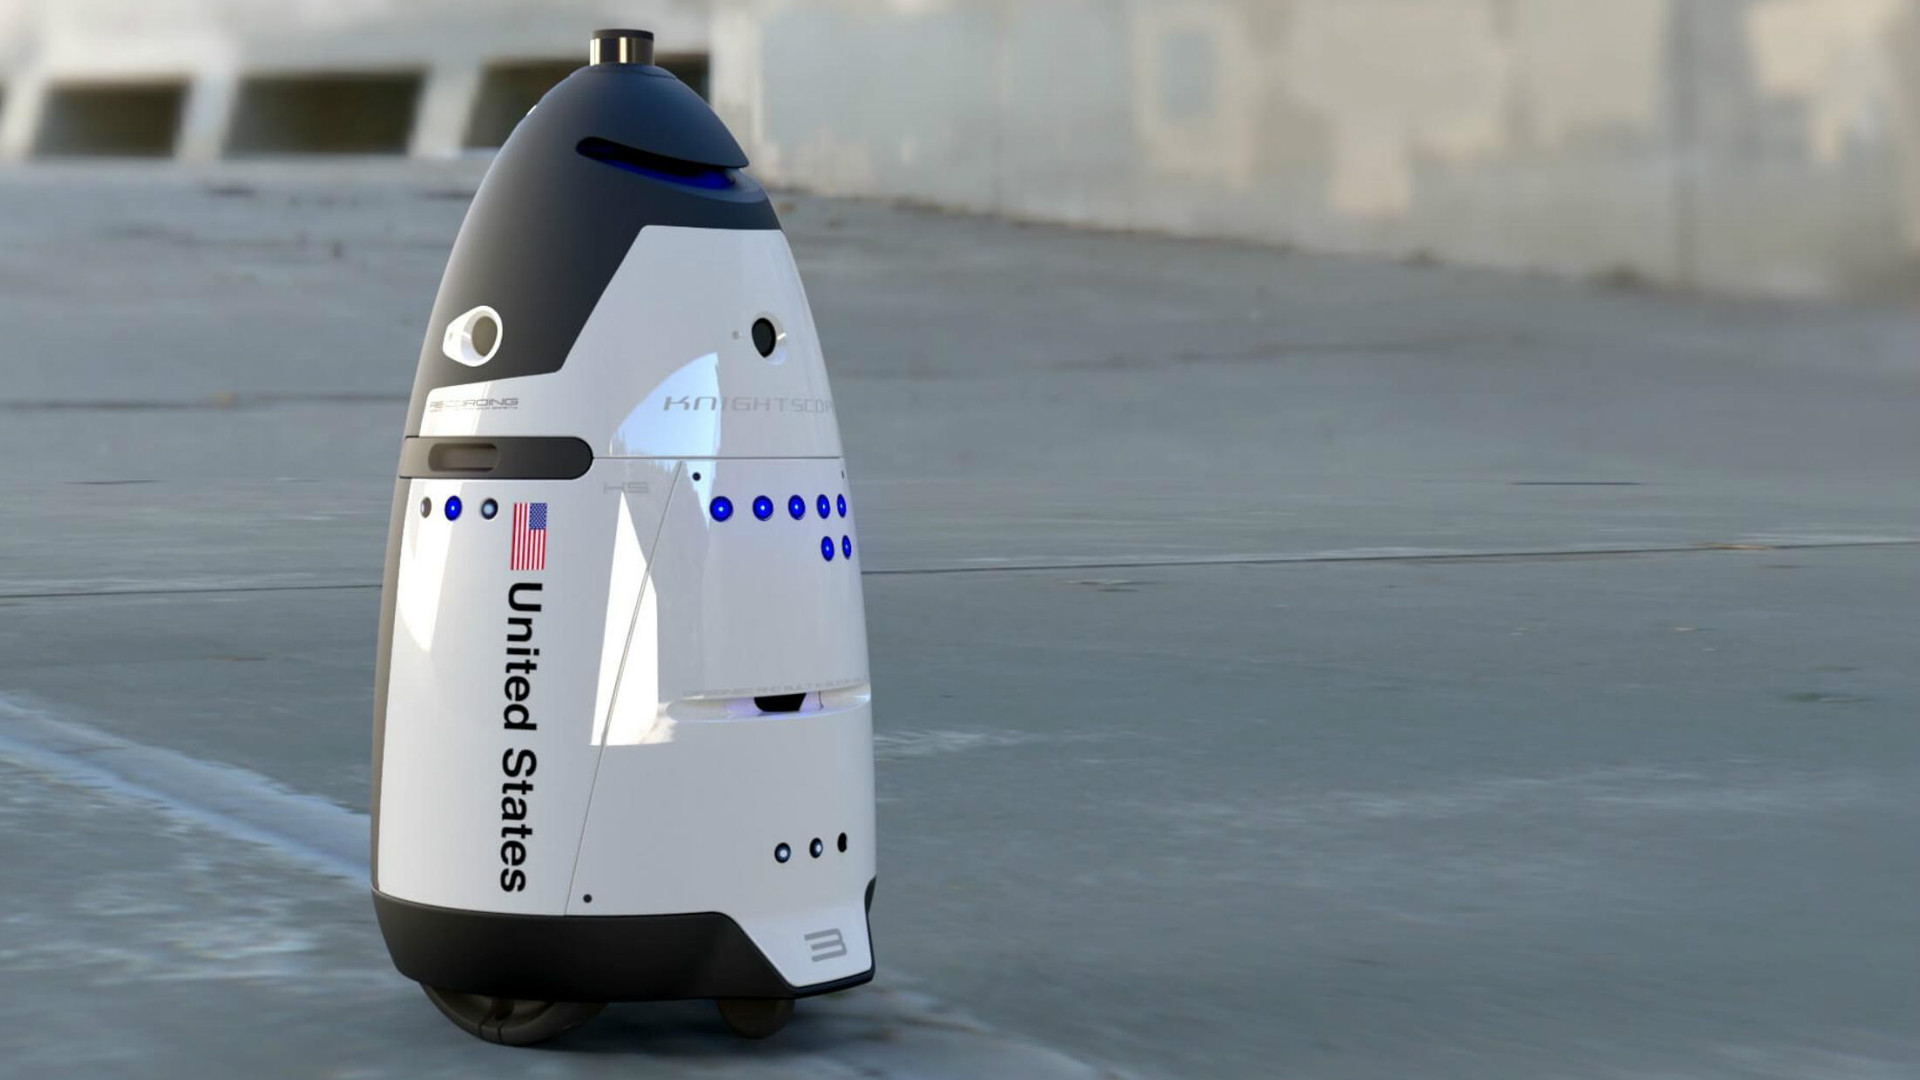 The K5 Patrol robot from Knightscope